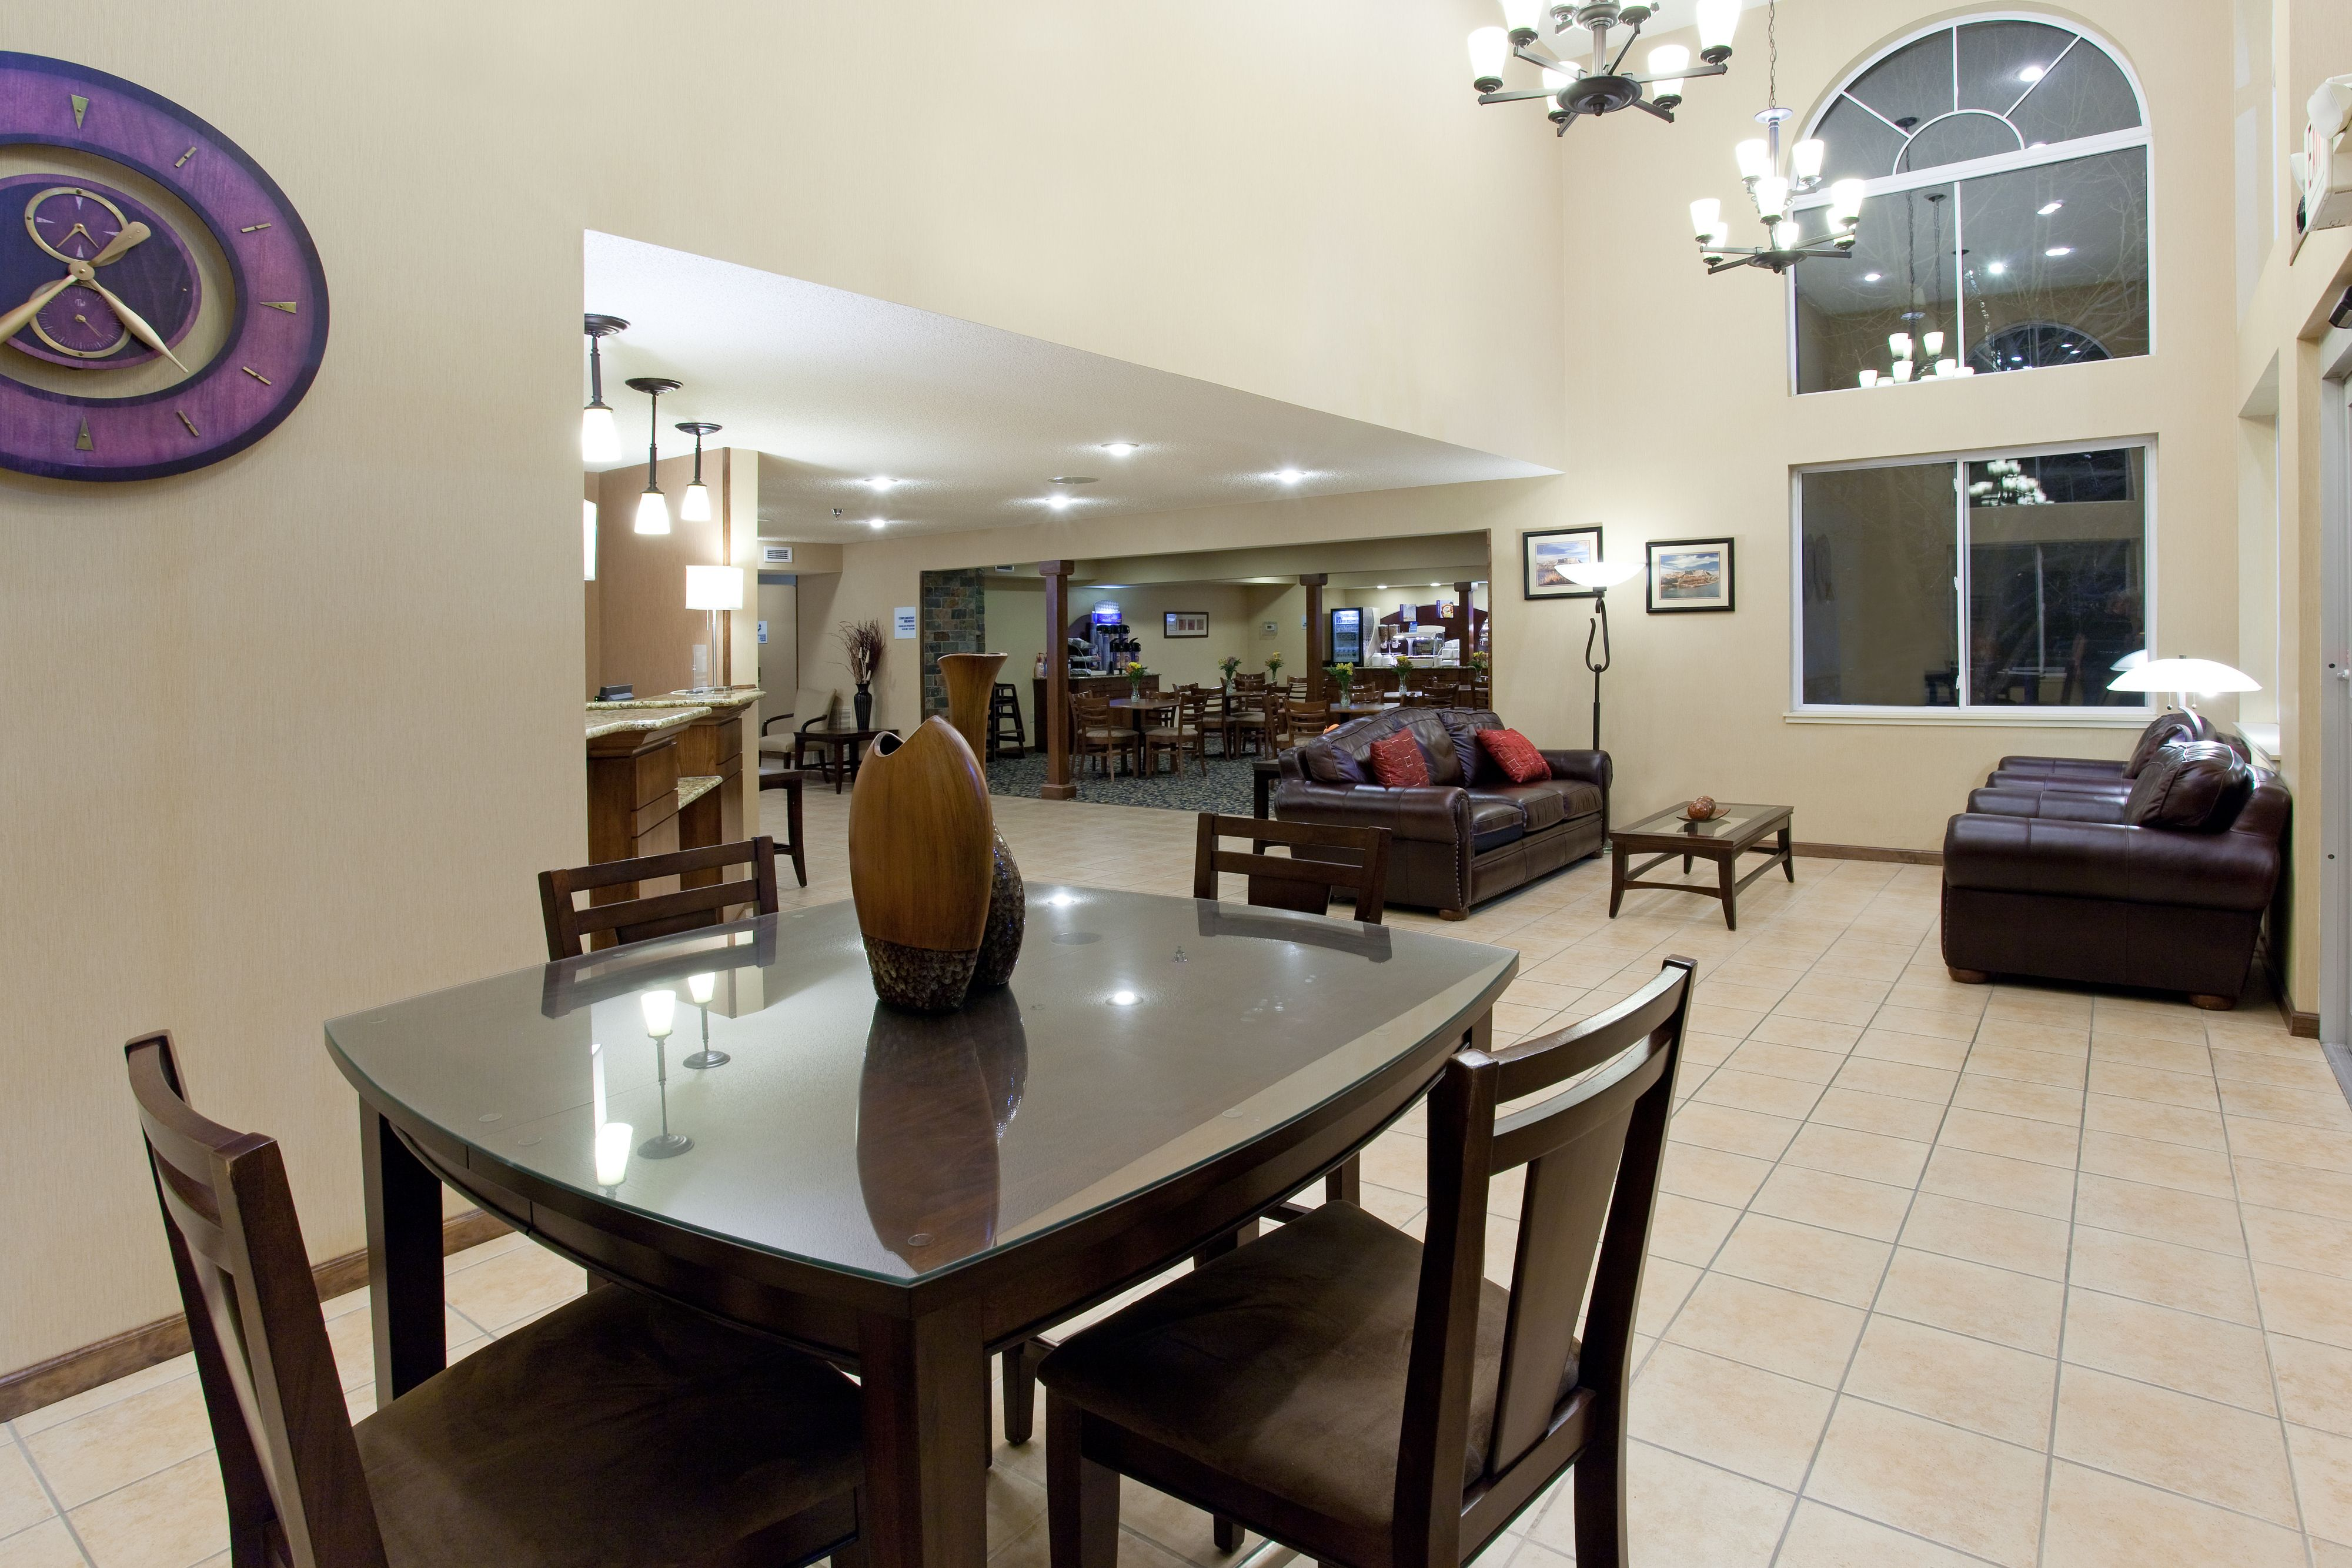 Holiday Inn Express & Suites Scottsbluff-Gering image 4